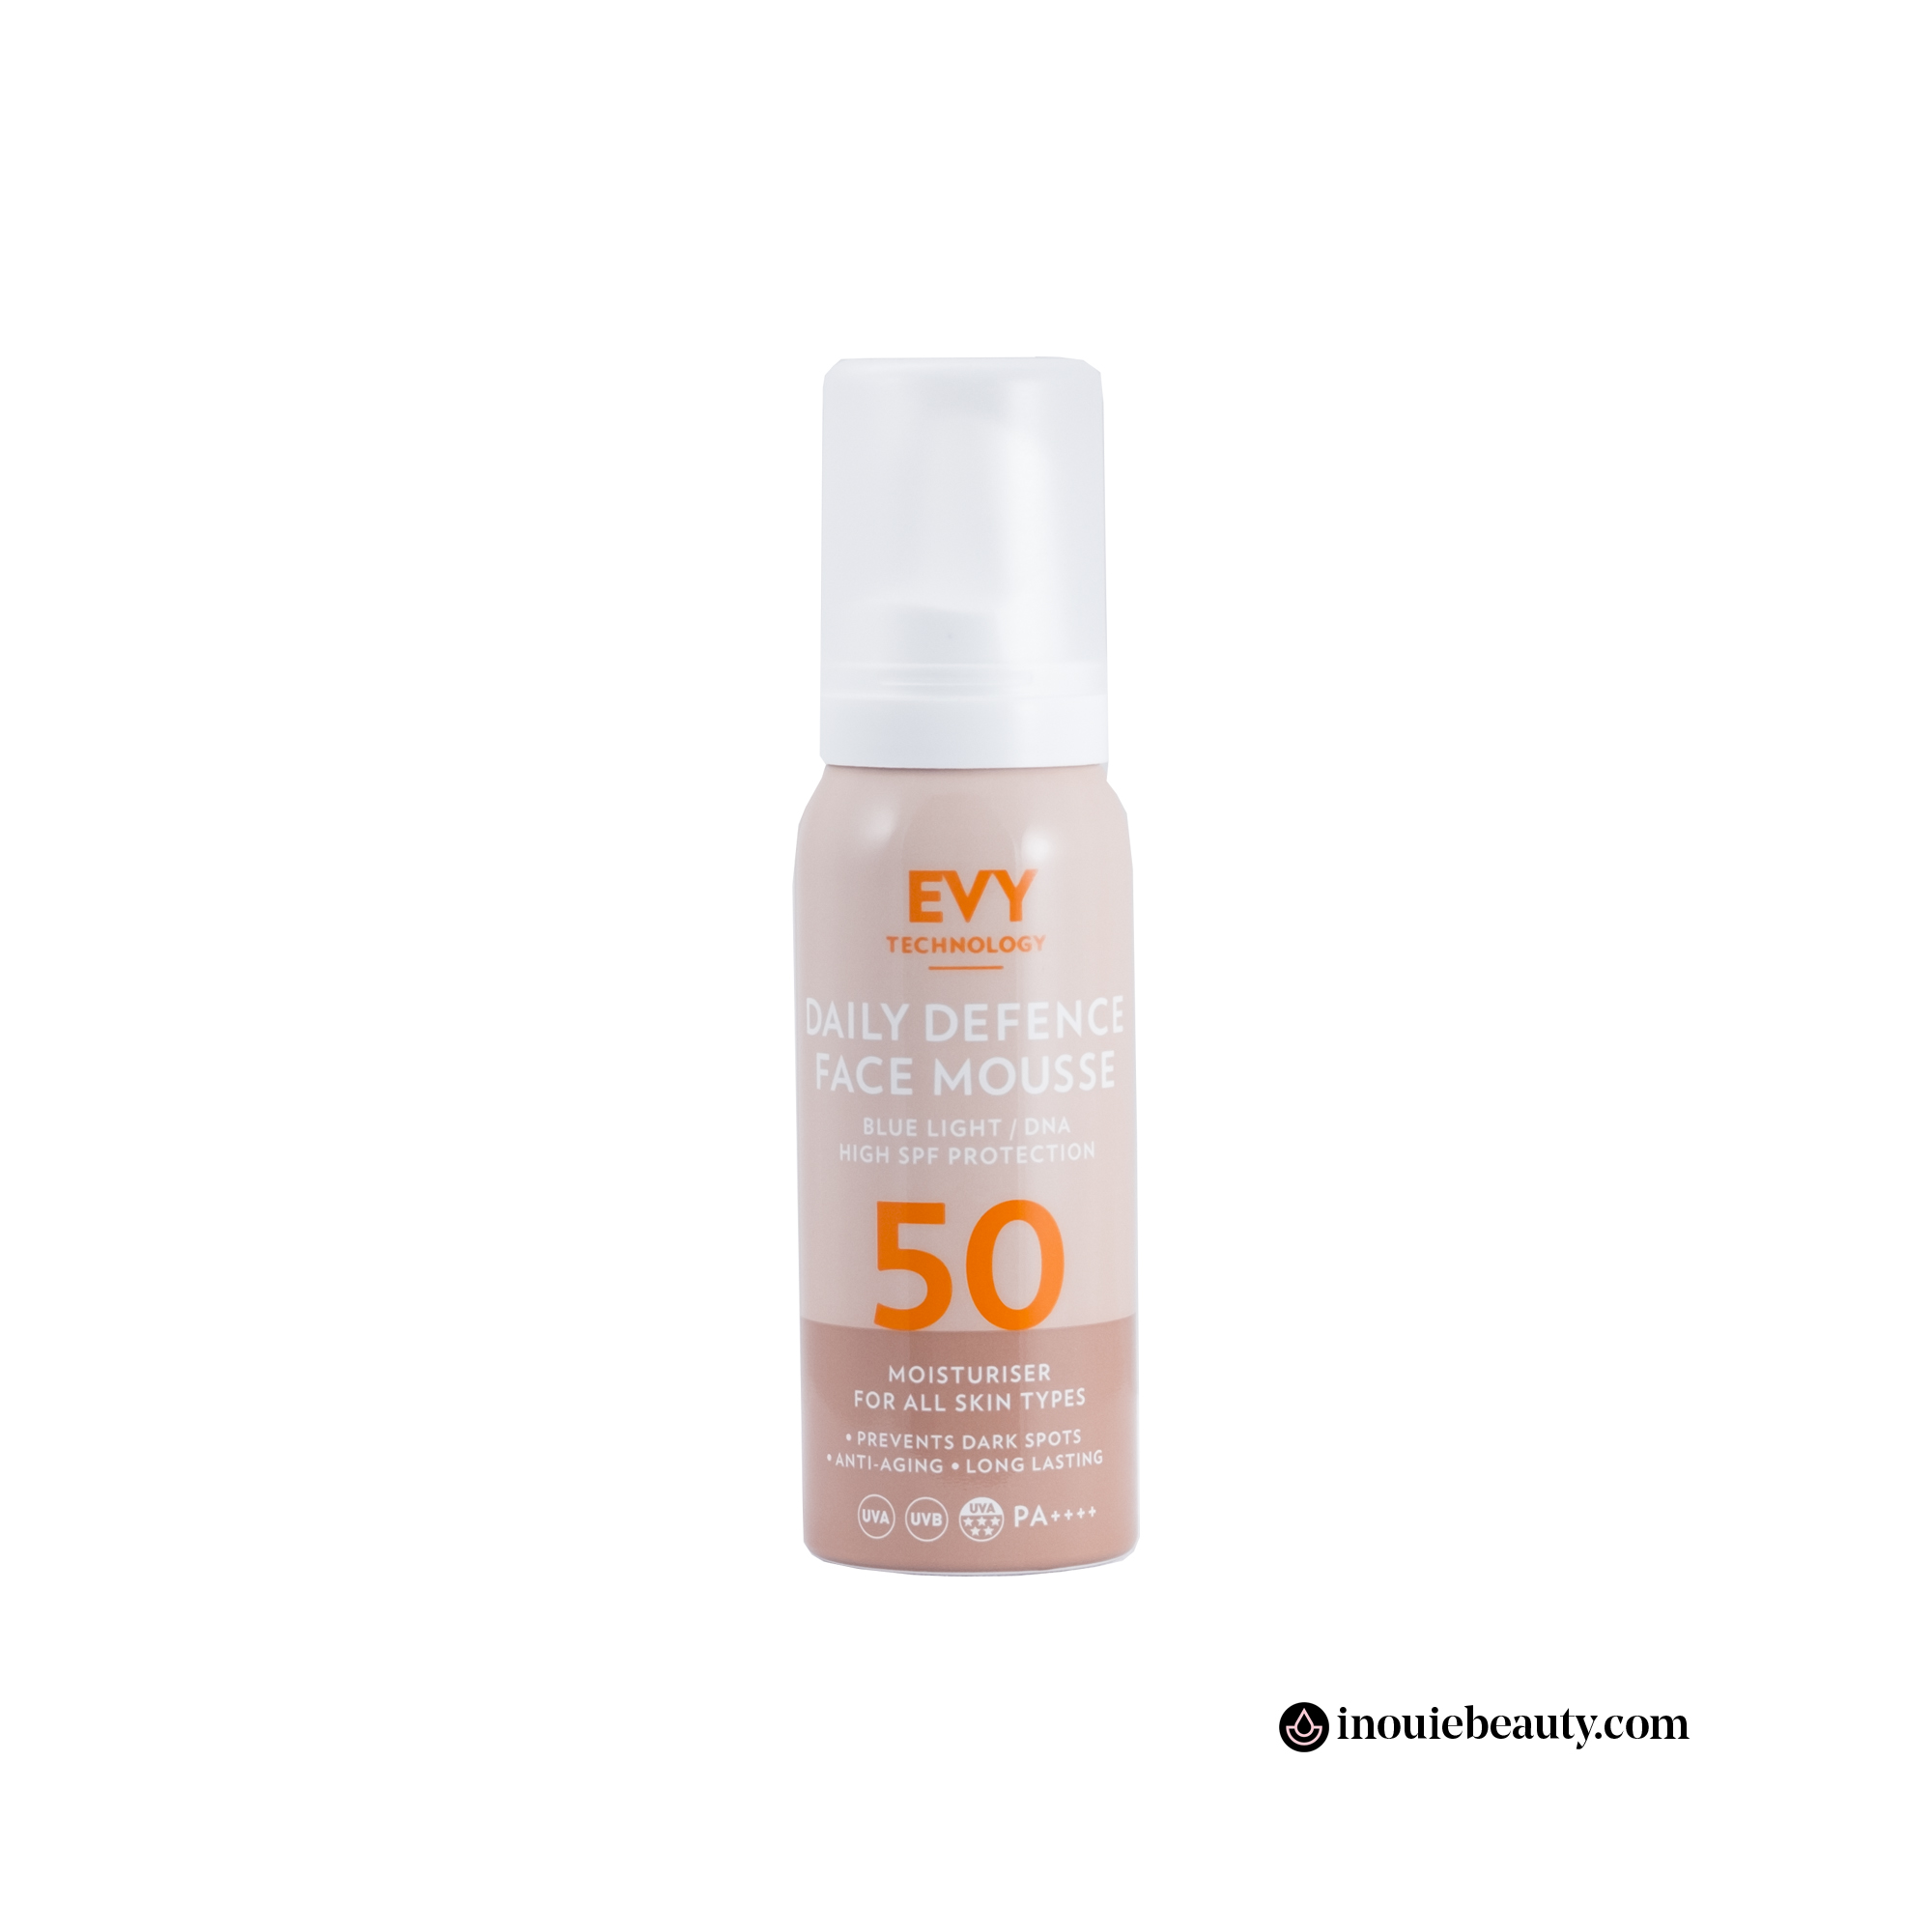 EVY Daily Defense Face Mousse SPF 50 (com envio a partir do dia 16 de Abril*)